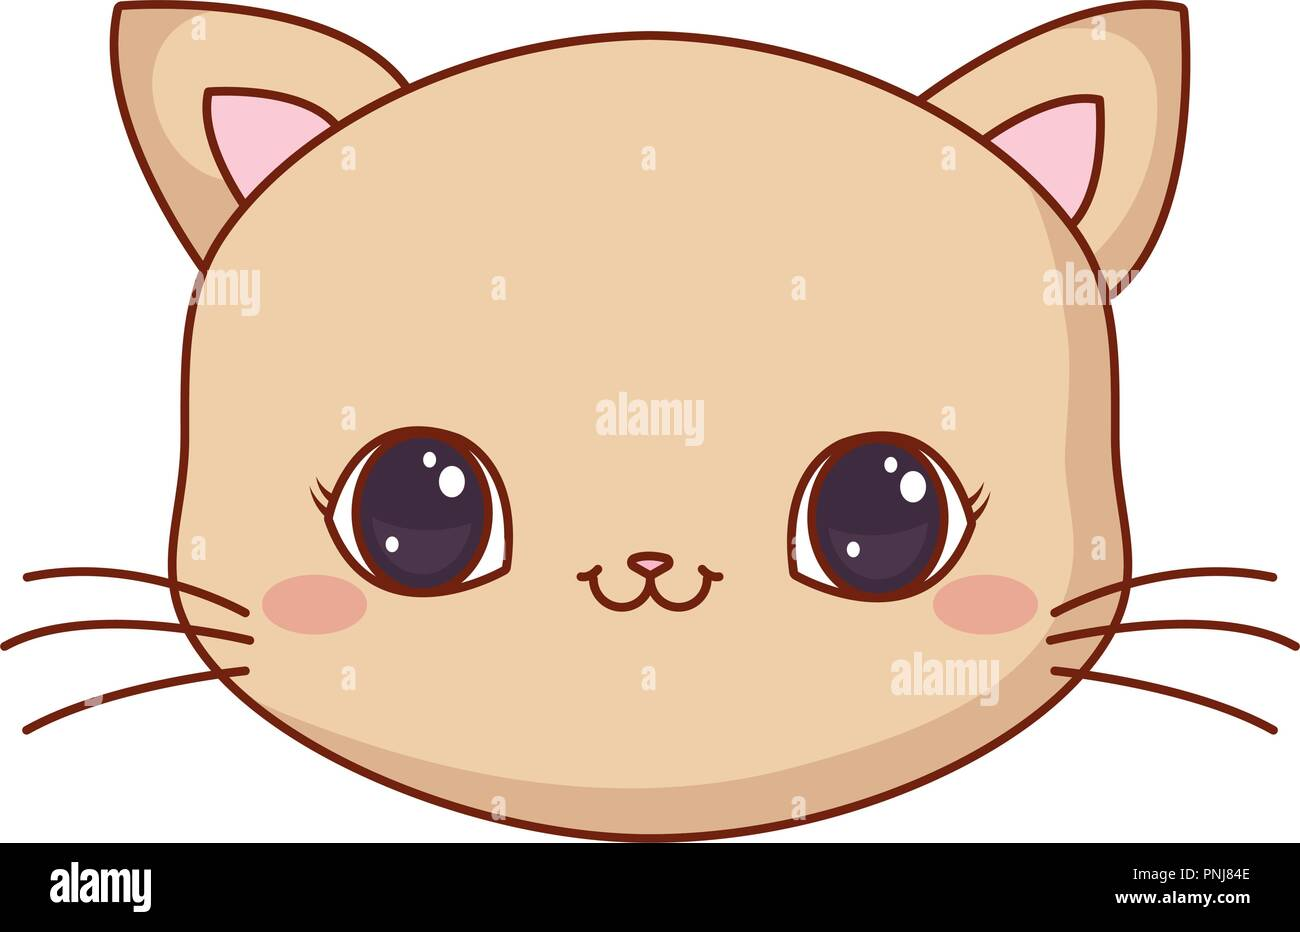 Cute Face Kitty Cartoon Animal Vector Illustration Stock Vector